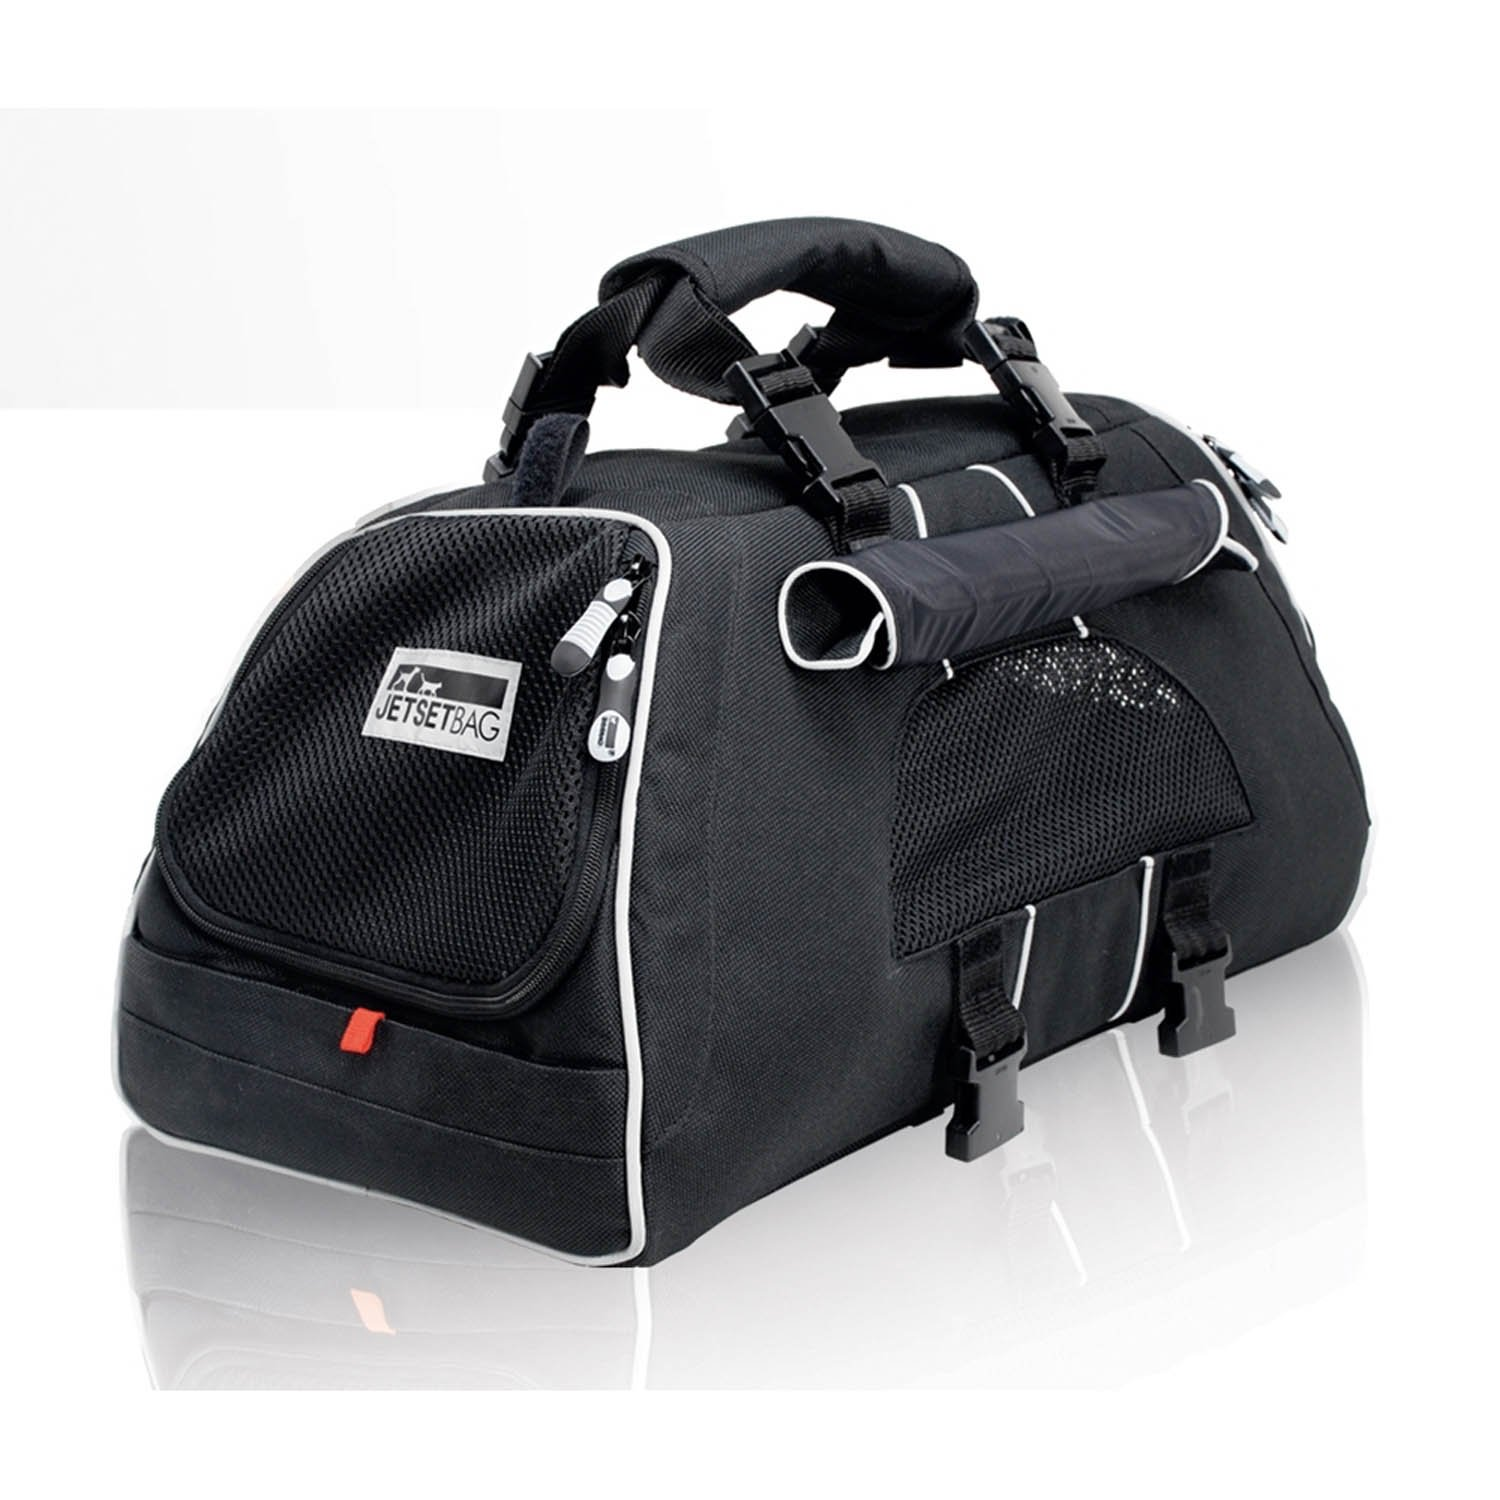 Pet Ego Jet Set Forma Frame Pet Carrier in Black